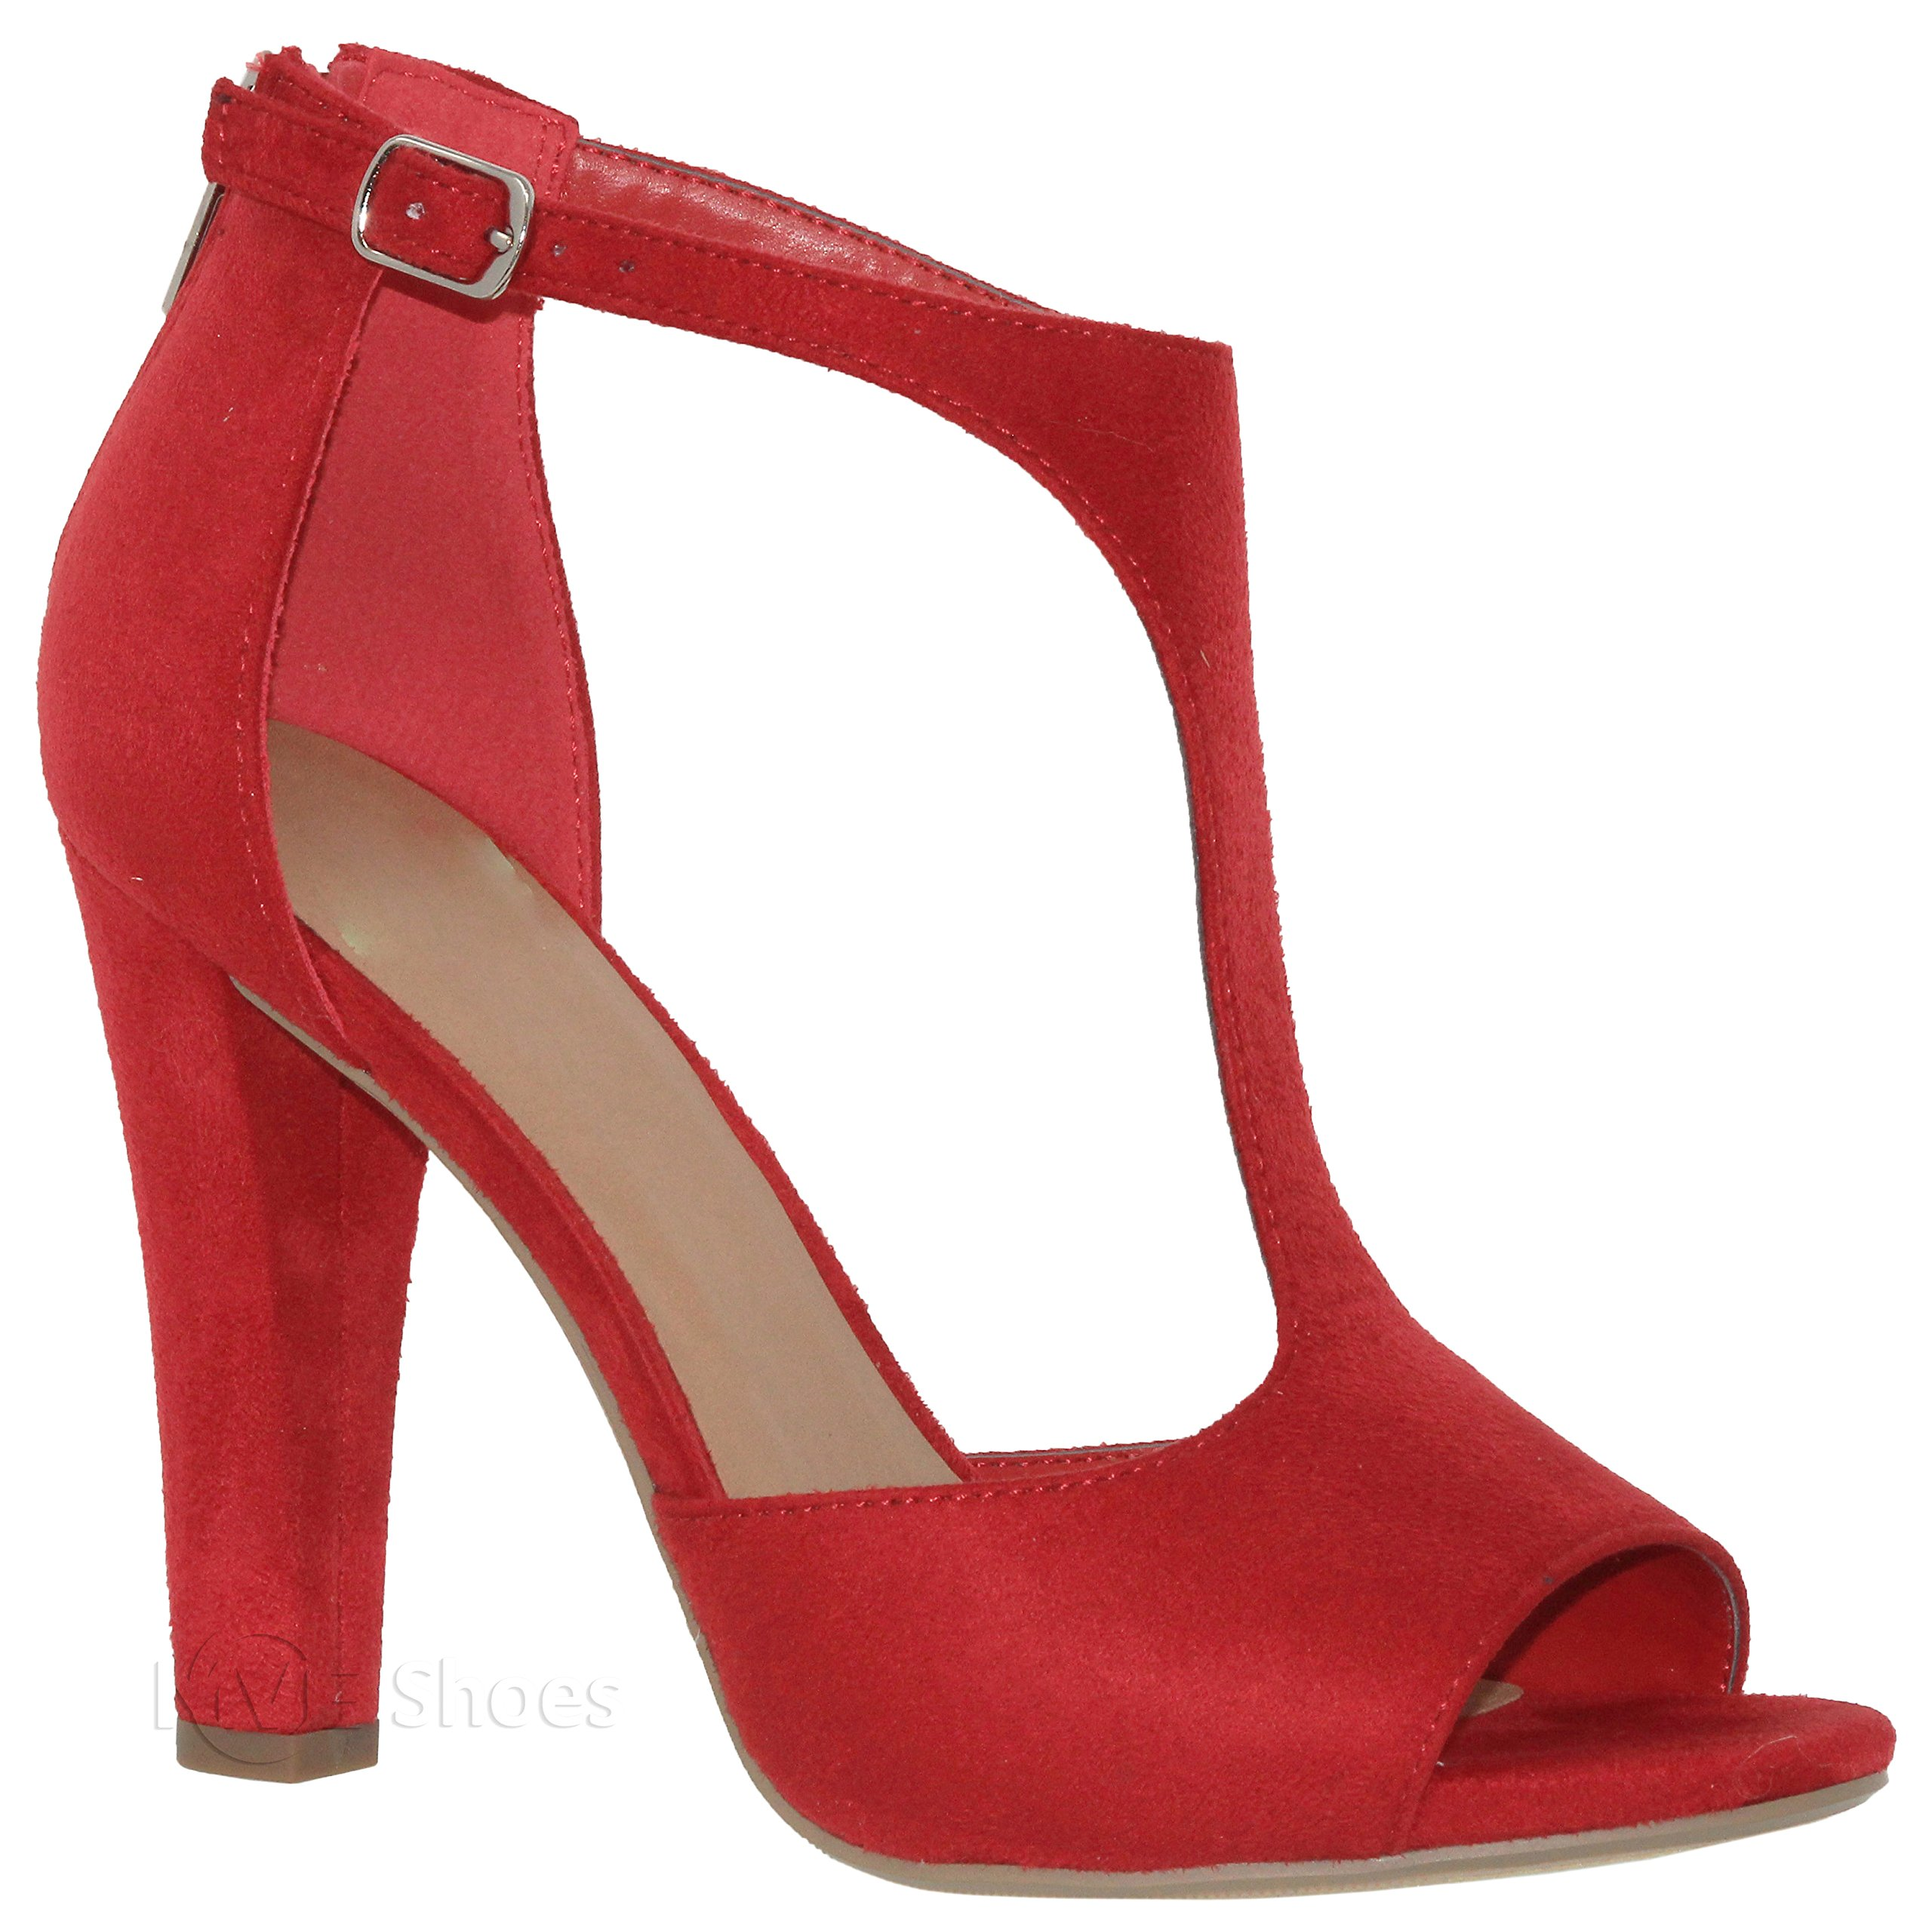 MVE Shoes Women's Open Toe T Starp Chunky Heeled Sandal - Sexy Syacked Heel - Cute Summer Ankle Strap Shoes, red su Size 10